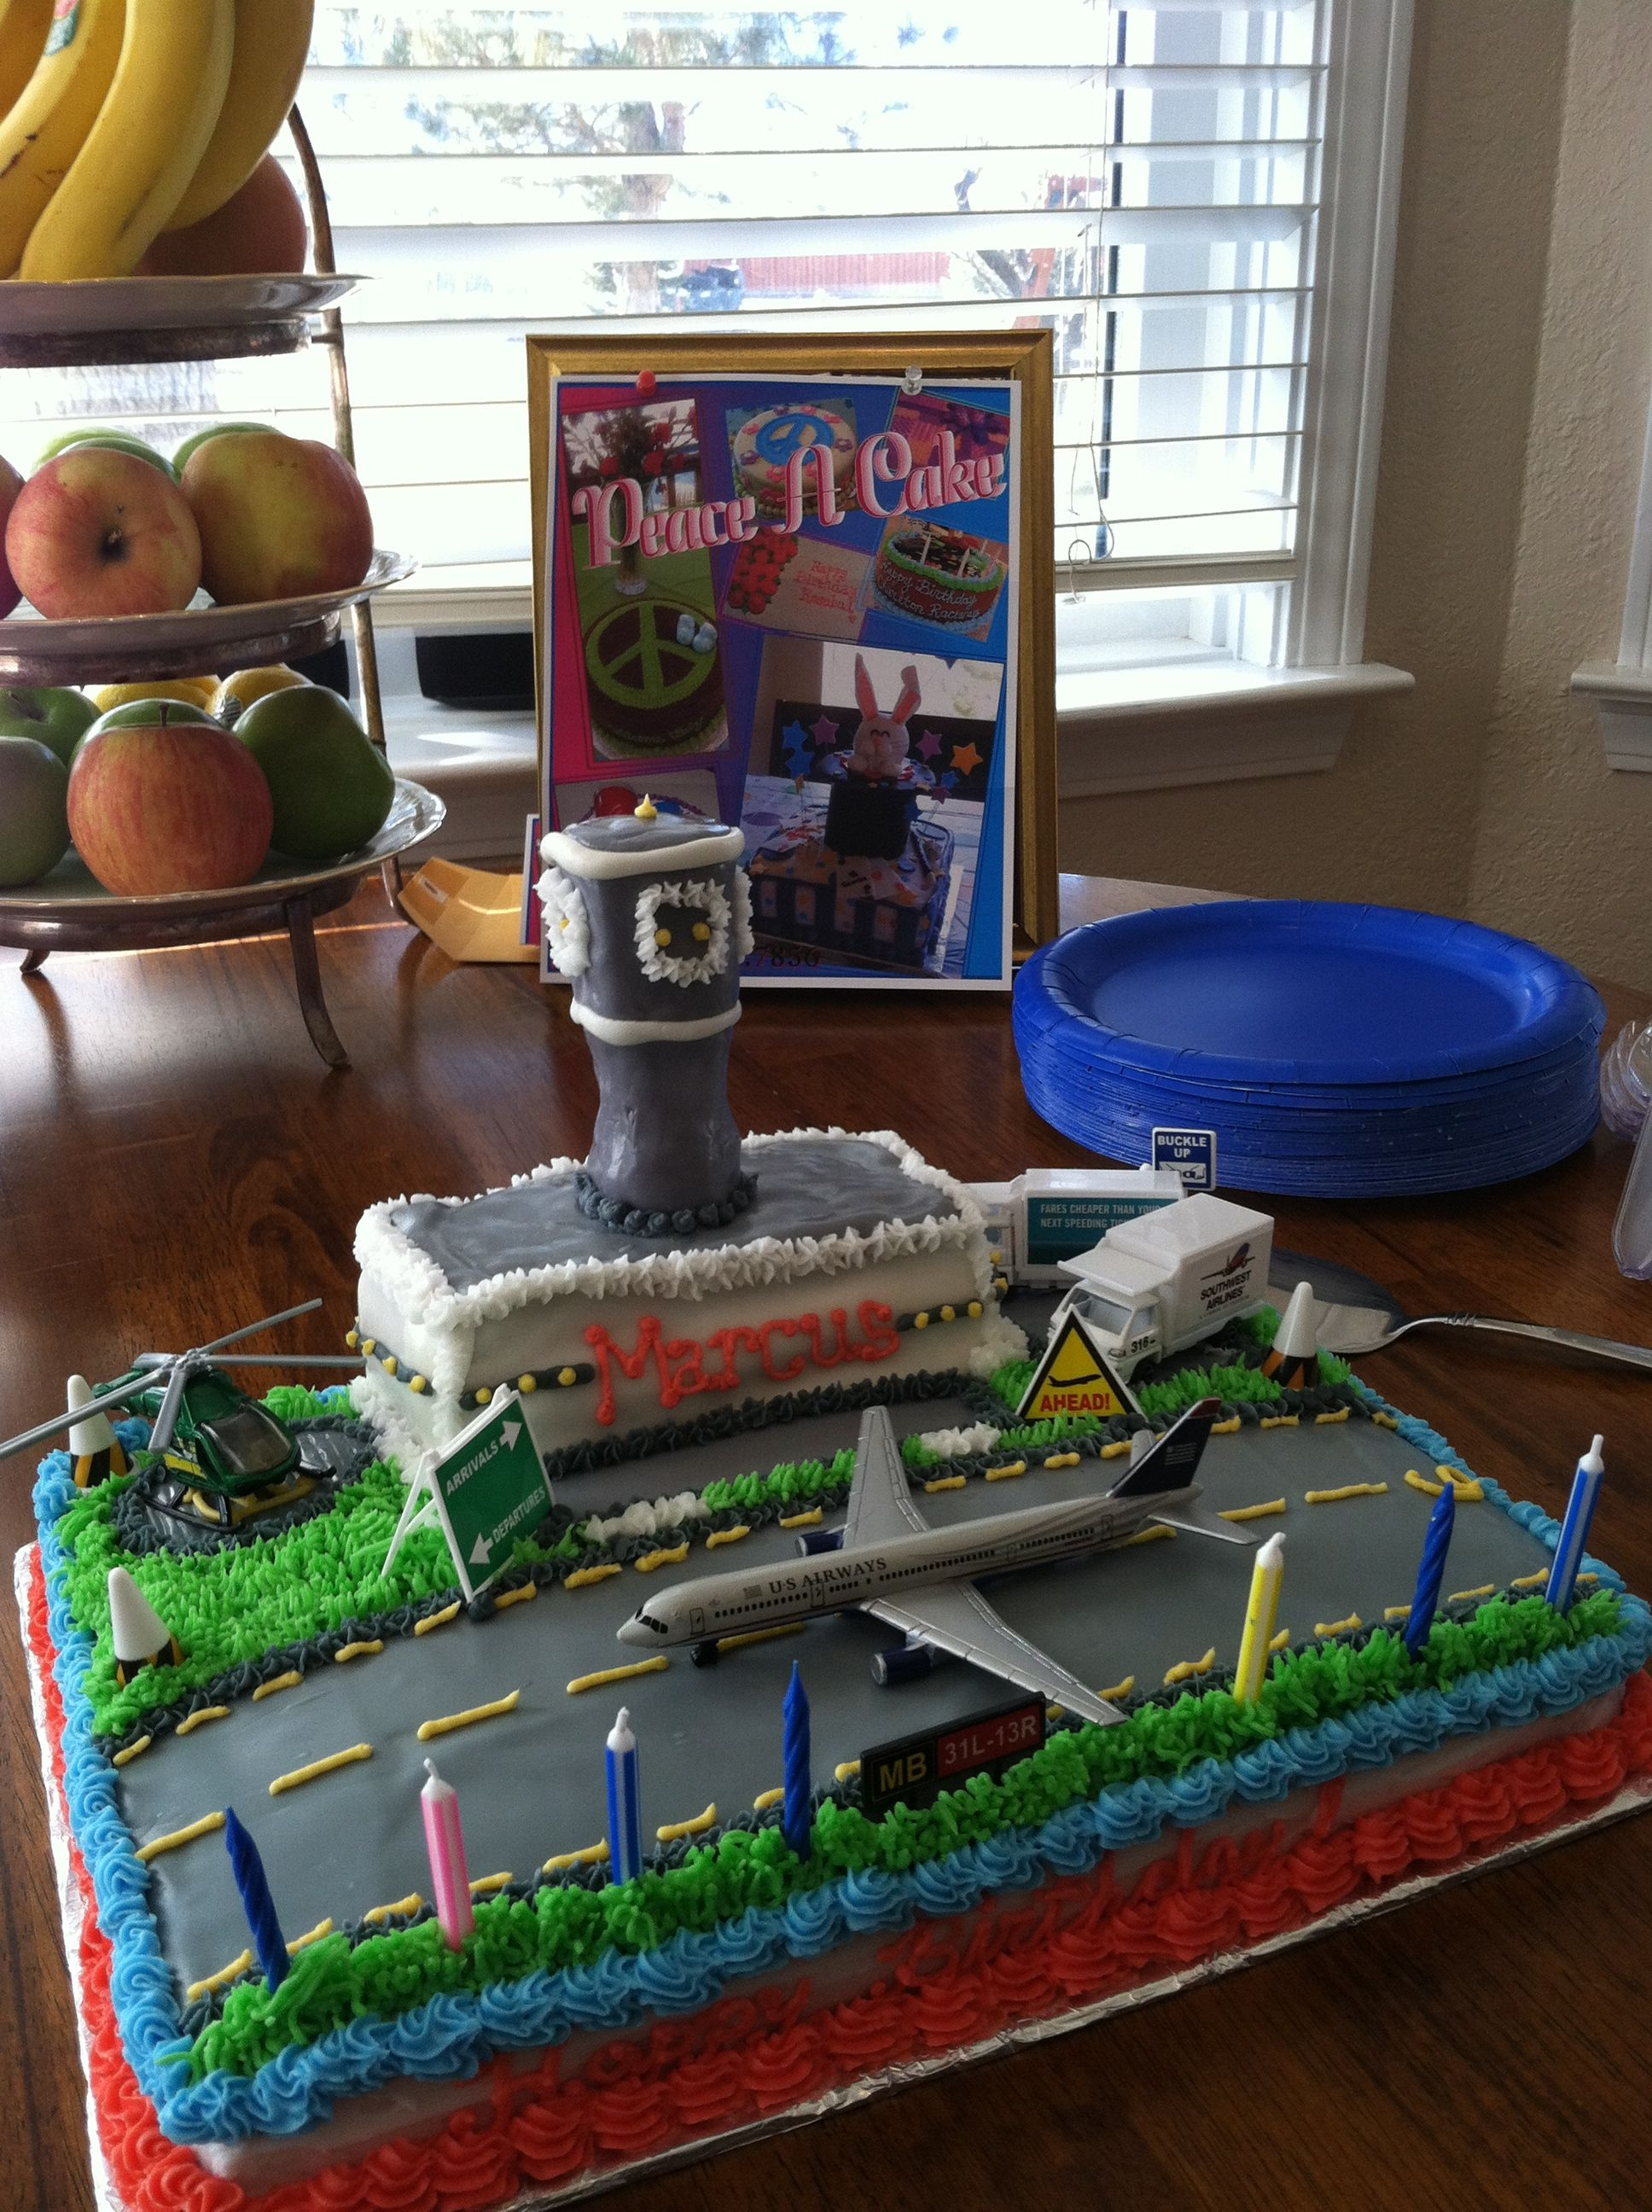 Airport Cake 6000 Cakes Ive Made In 2018 Pinterest Cake